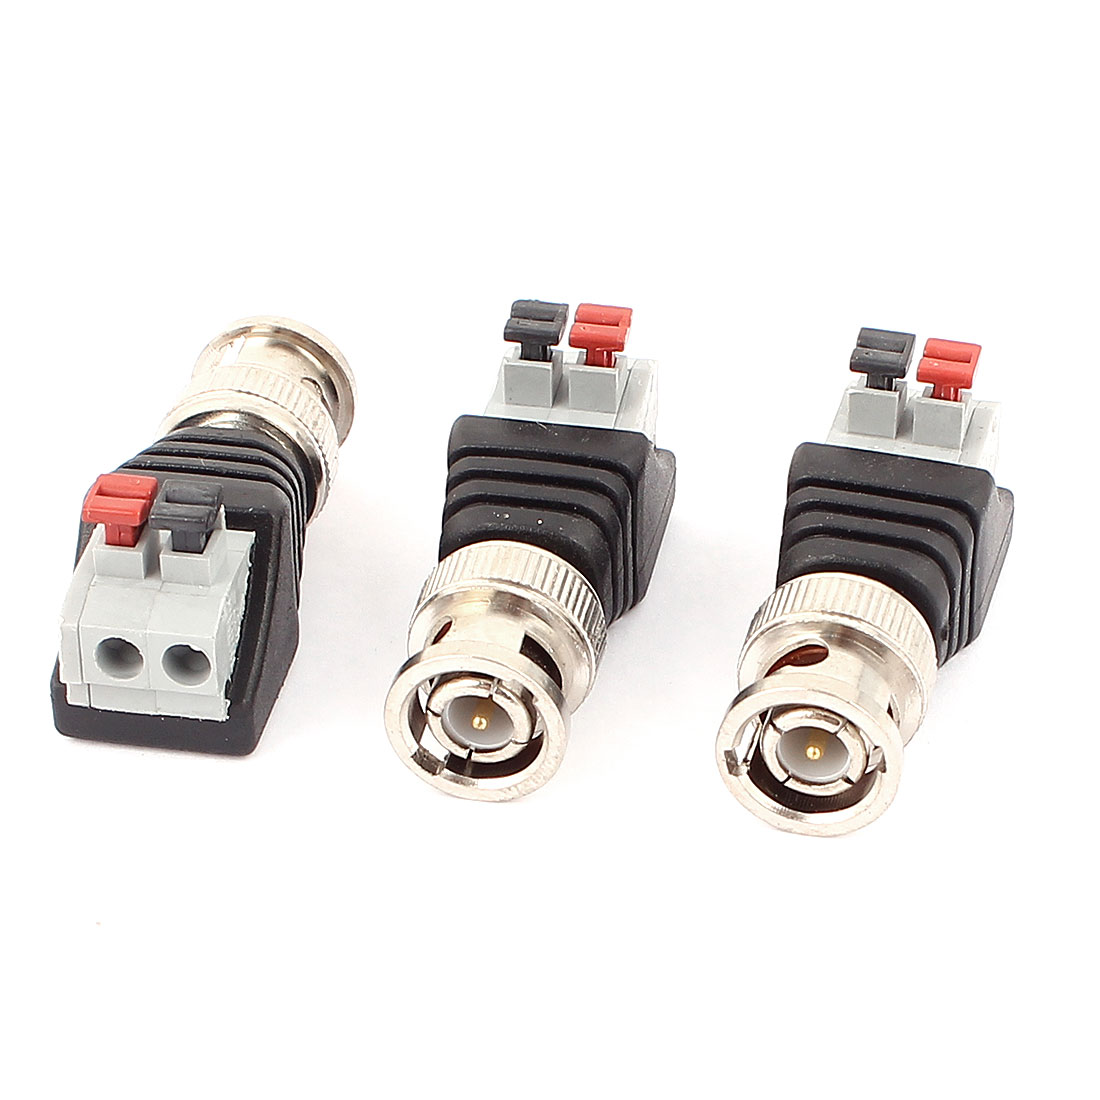 3 Pcs Clip Type Terminal Block Coaxial Cat5 to BNC Female Jack Video Balun Connector